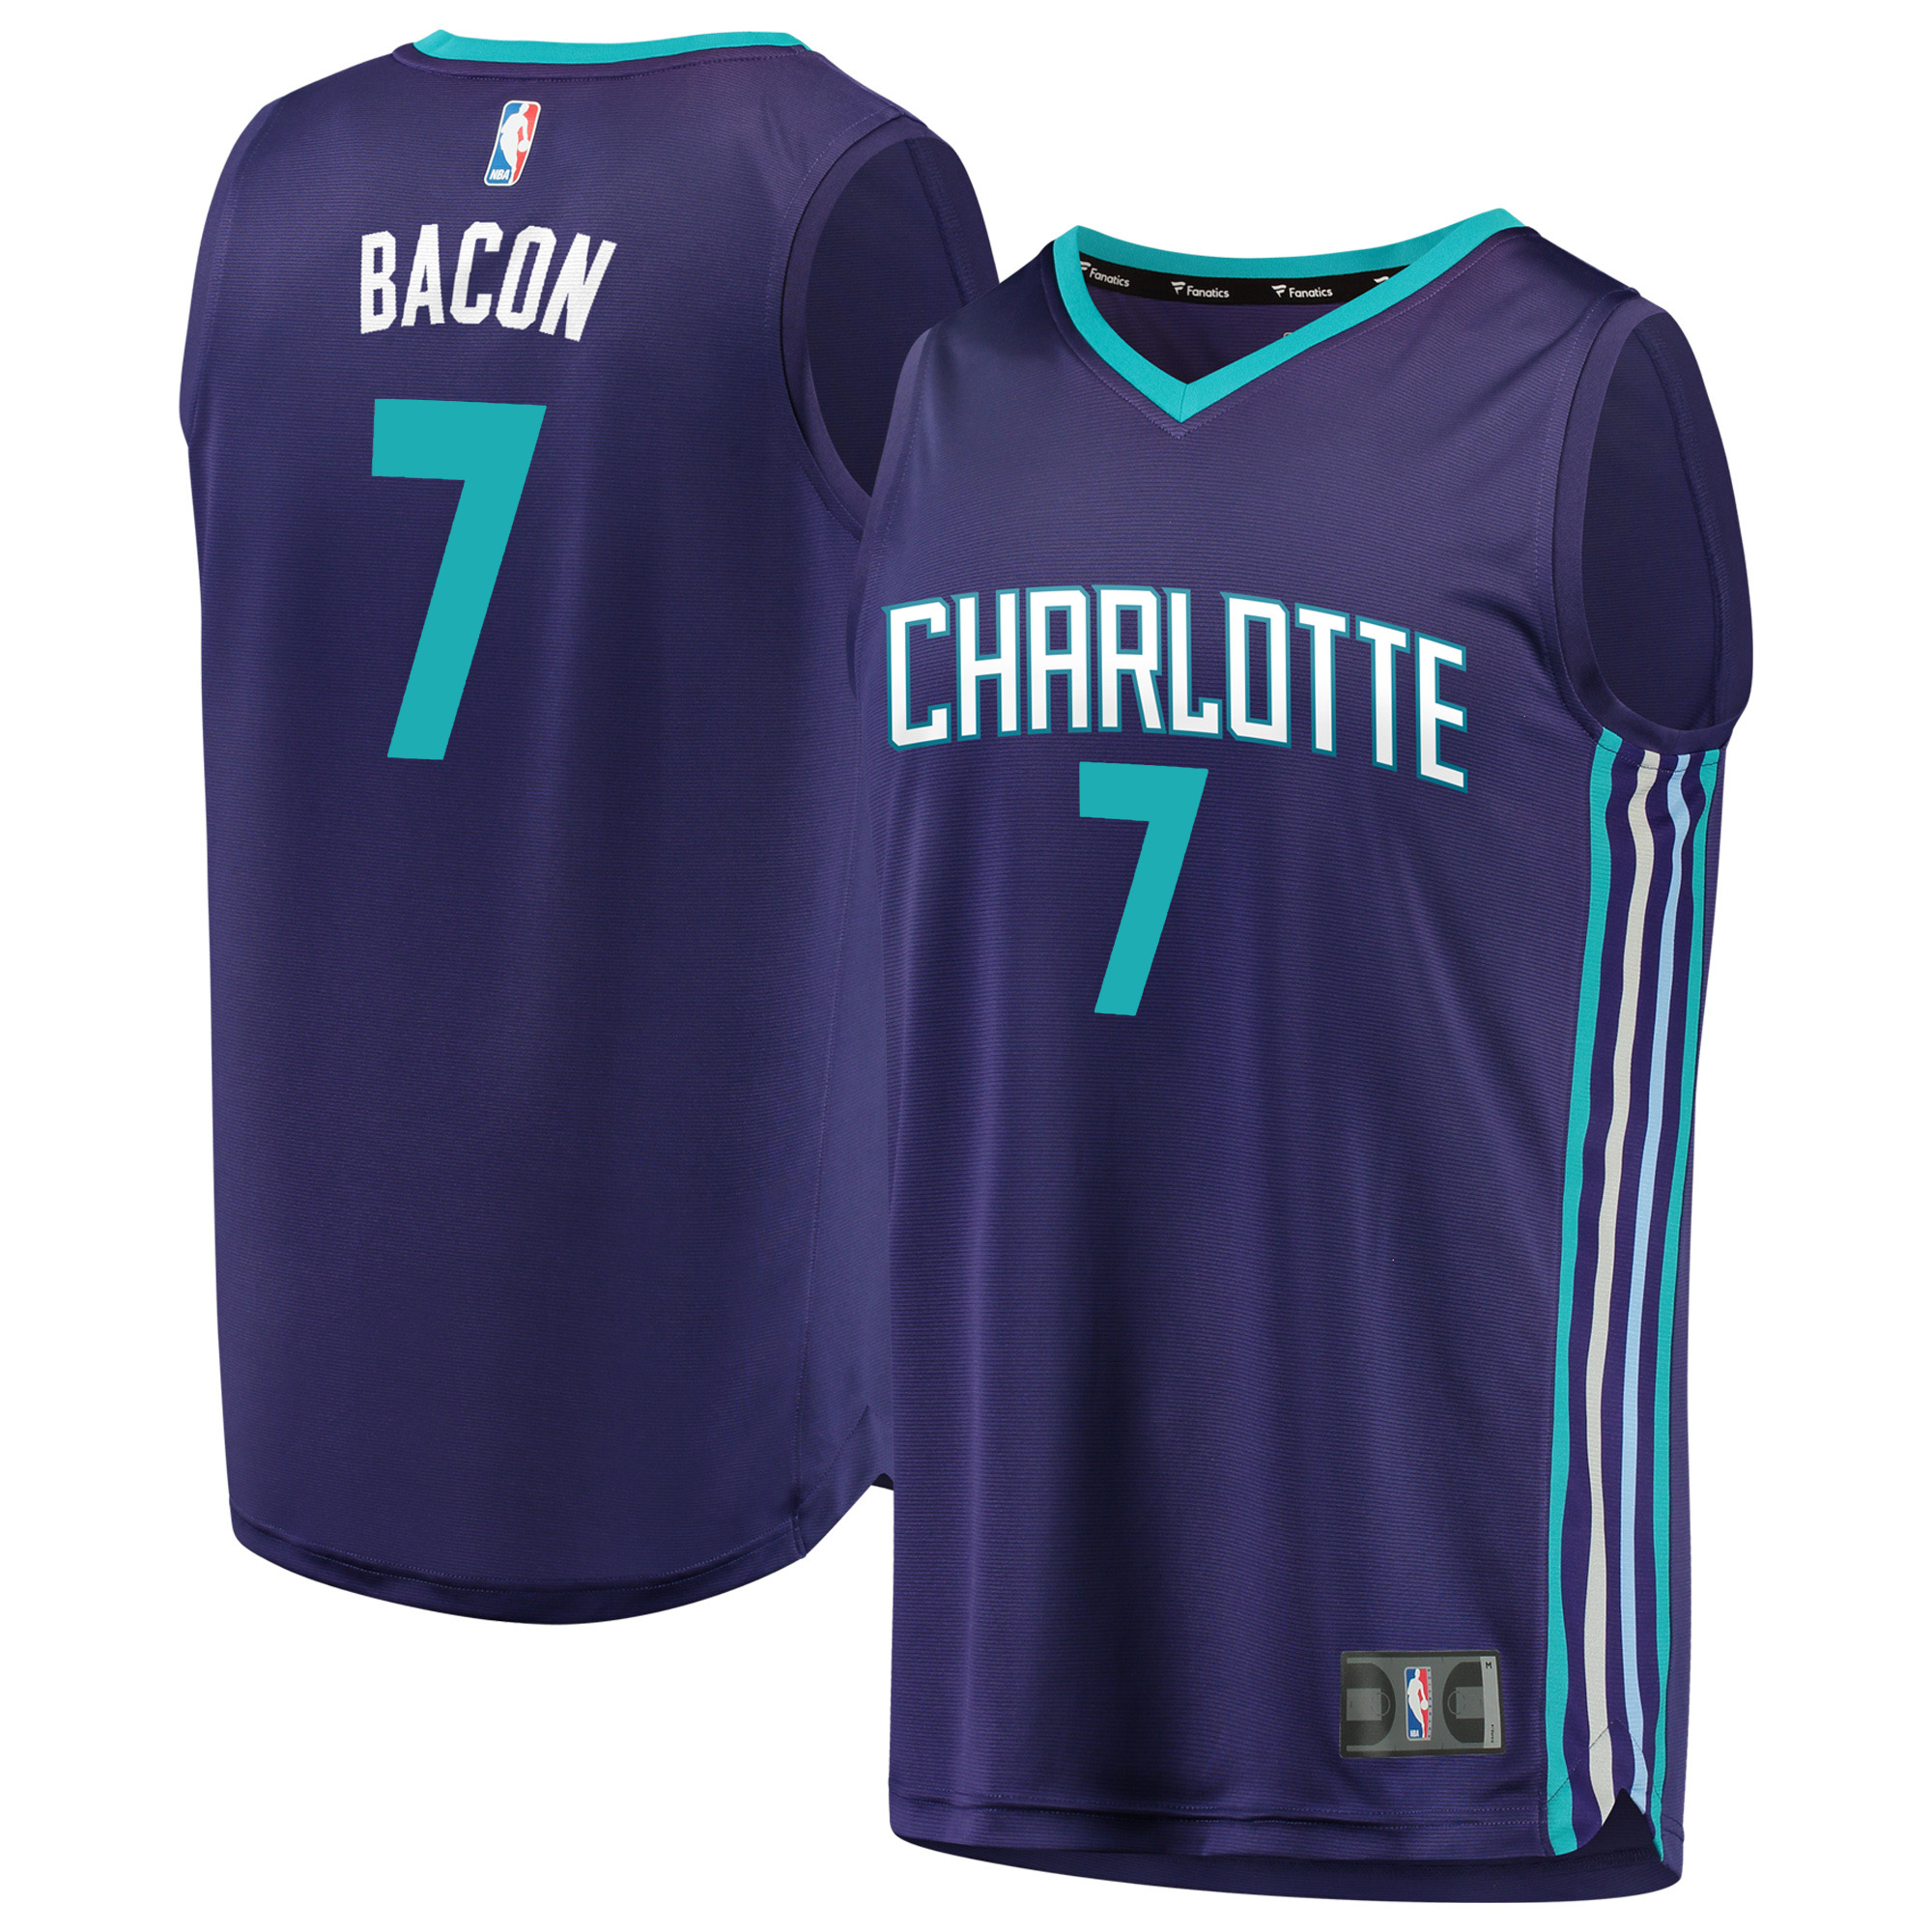 Dwayne Bacon Charlotte Hornets Fanatics Branded Fast Break Replica Player Jersey - Statement Edition - Purple